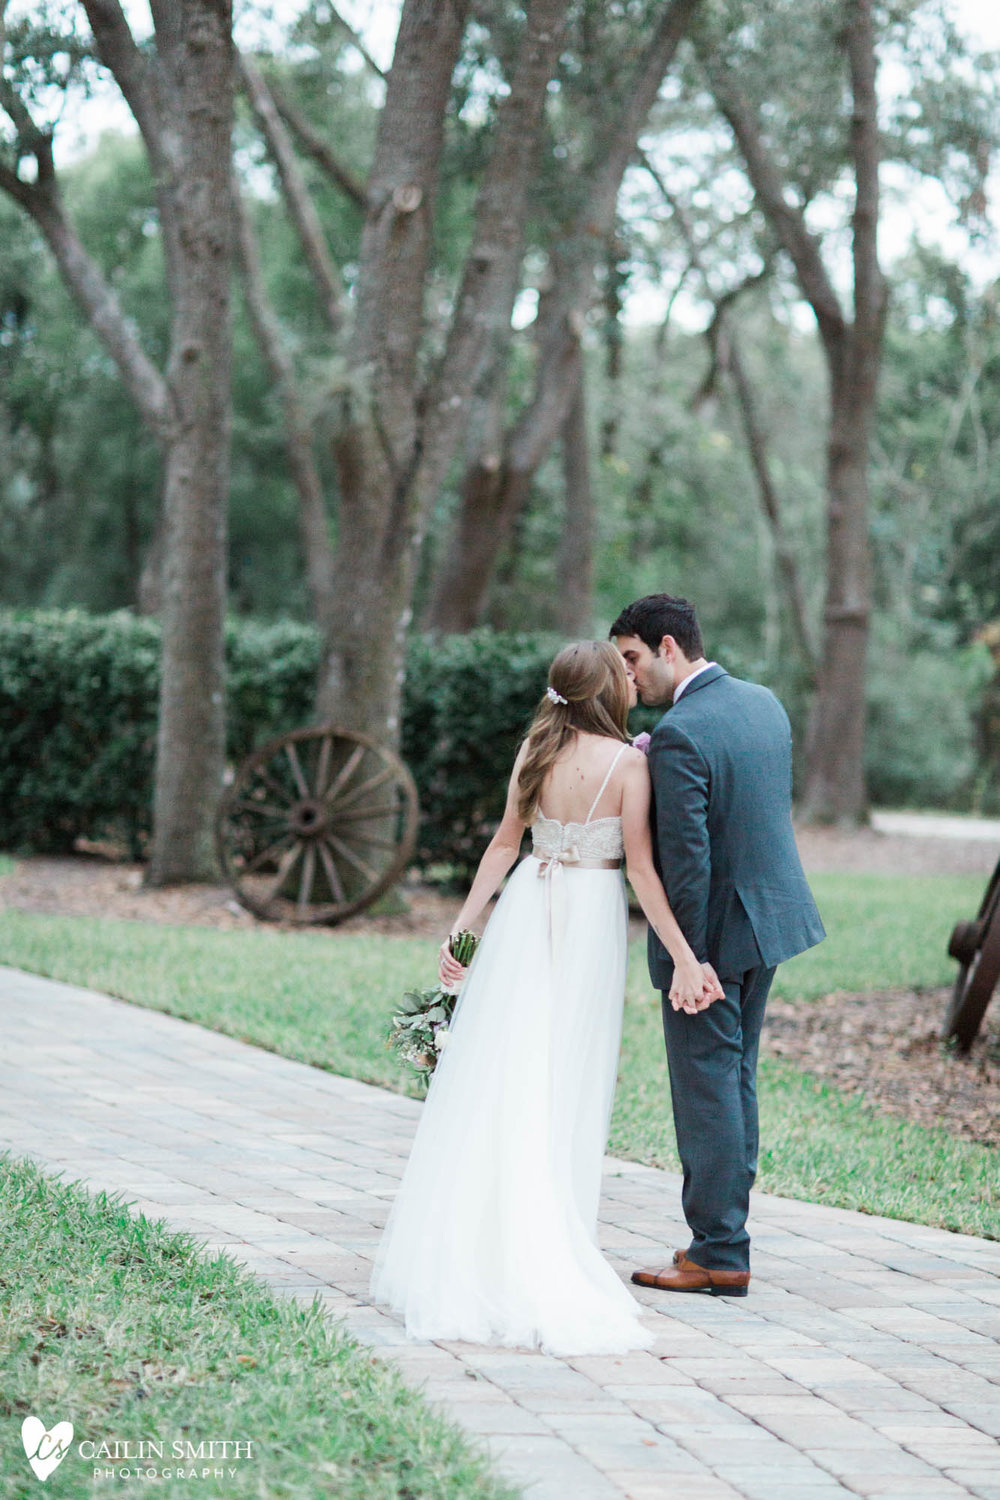 Sylvia_Anthony_Bowing_Oaks_Plantation_Wedding_Photography_0087.jpg